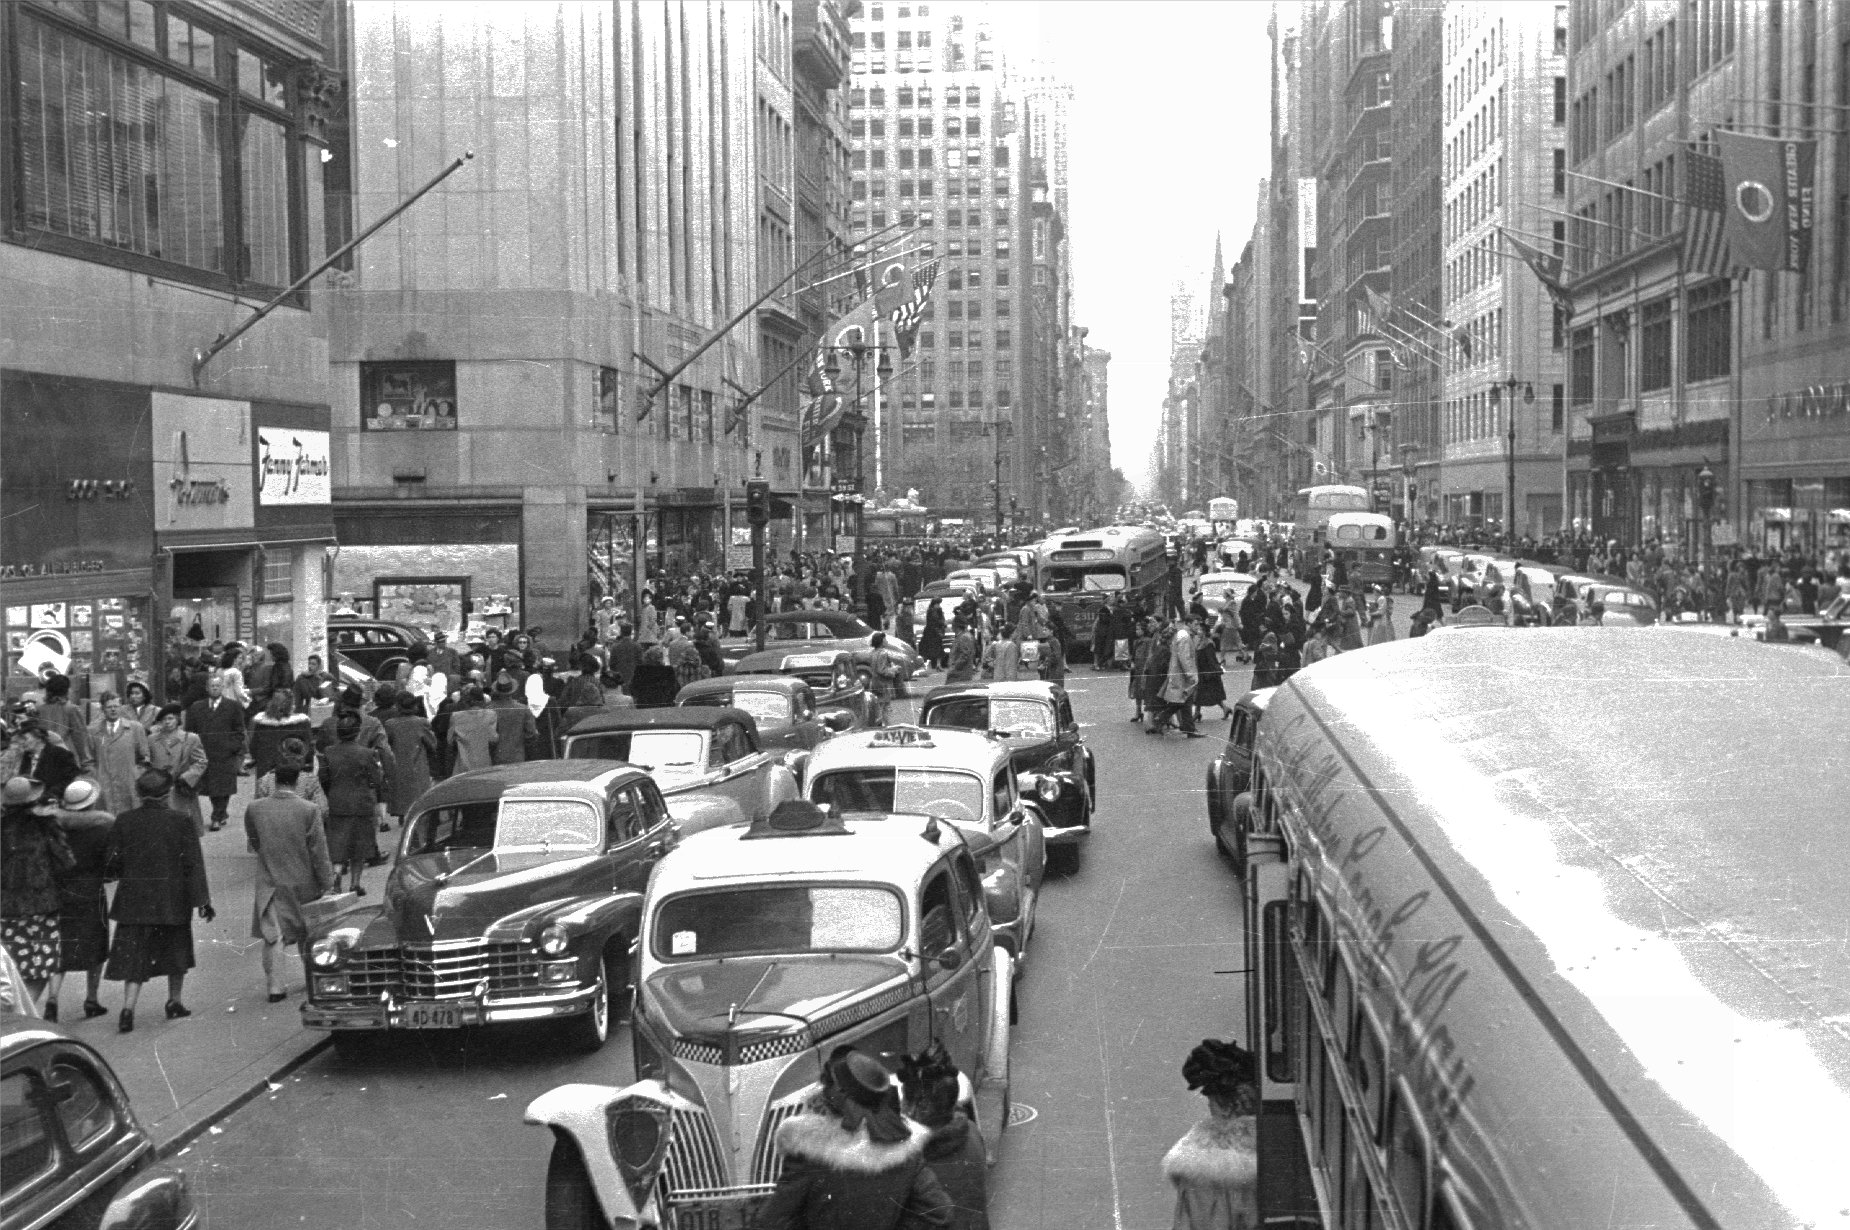 New York 1950s Playing In The World Game